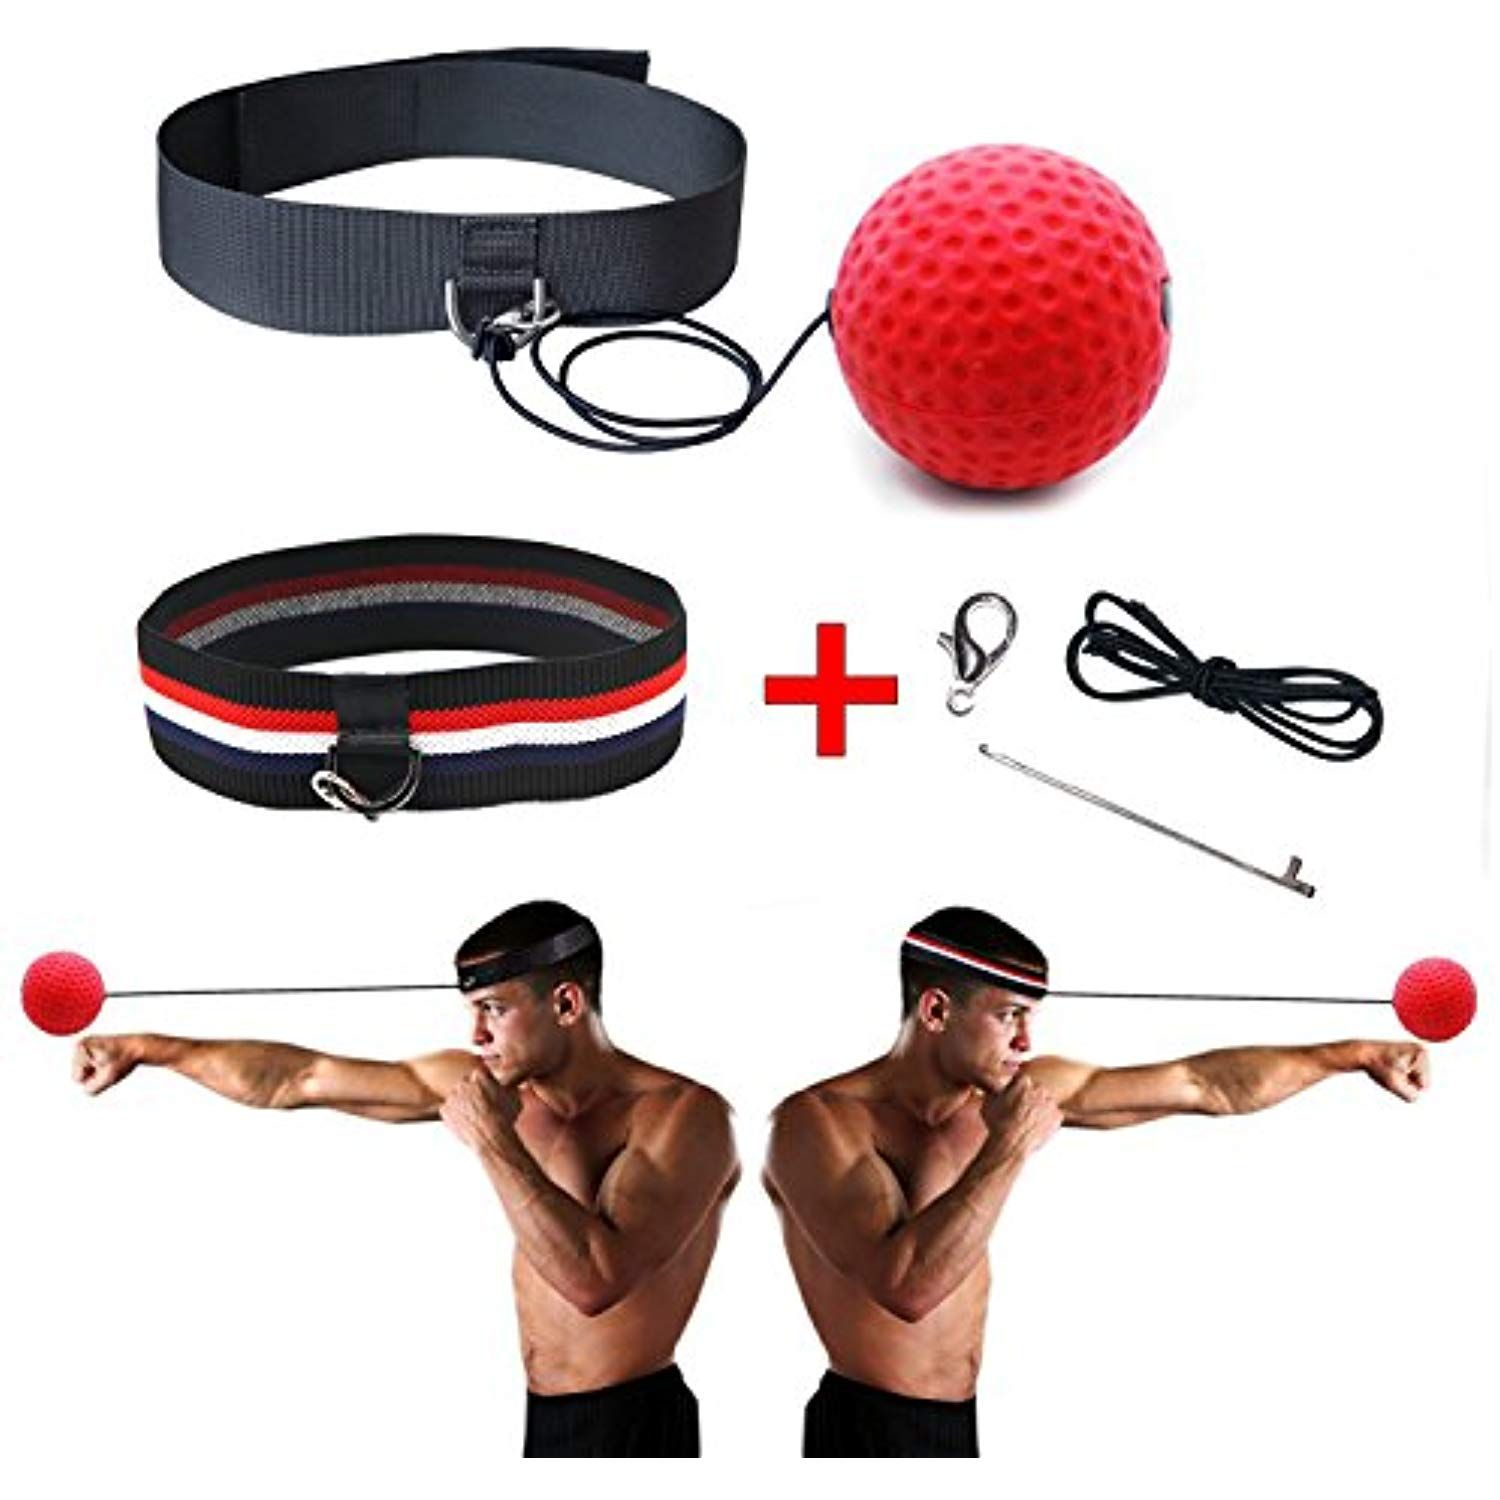 Eye Hand Kakoa Sports Boxing Reflex Ball Speed Great Training for Accuracy